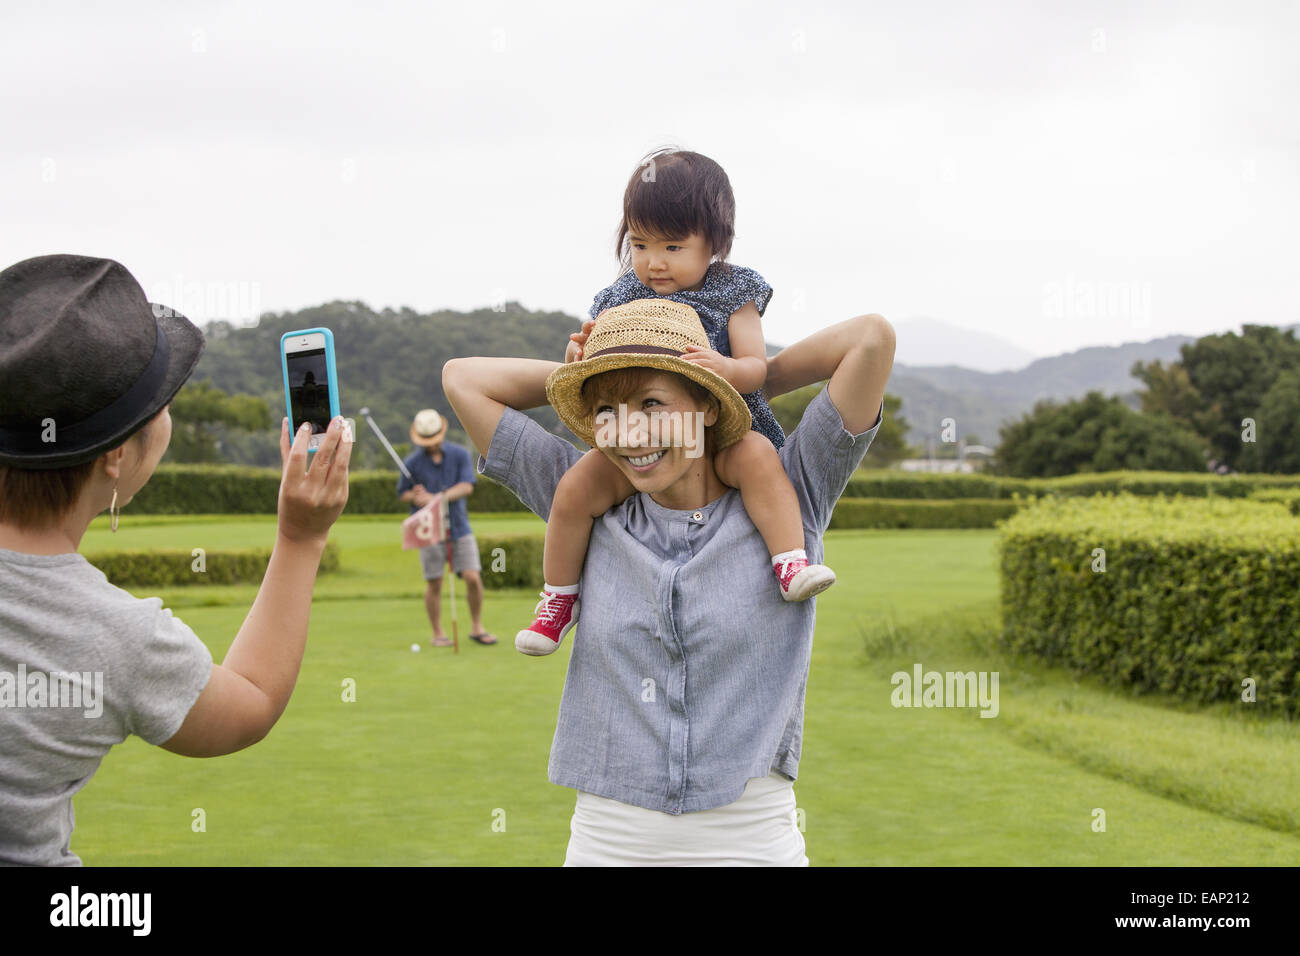 Family on a golf course. A child on a woman's shoulders. - Stock Image